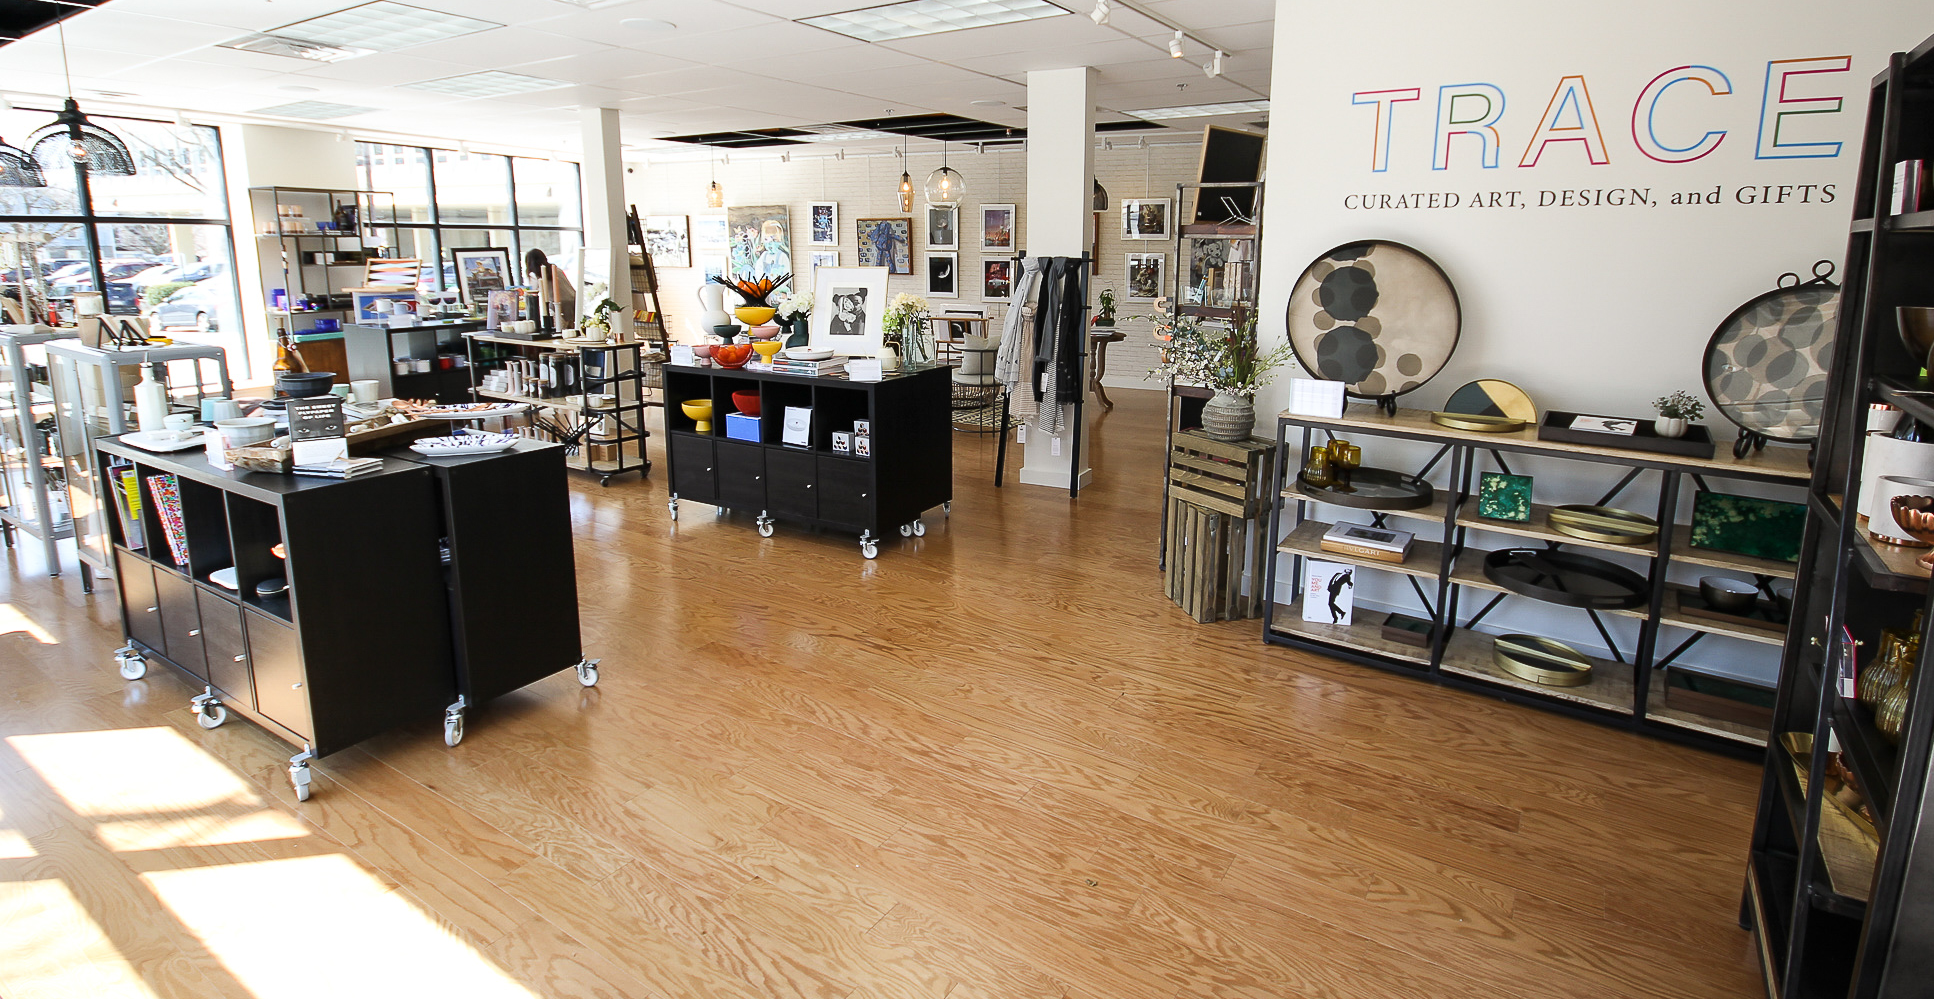 Beauty meets function at TRACE: The Main Line's new art and design gallery and shop